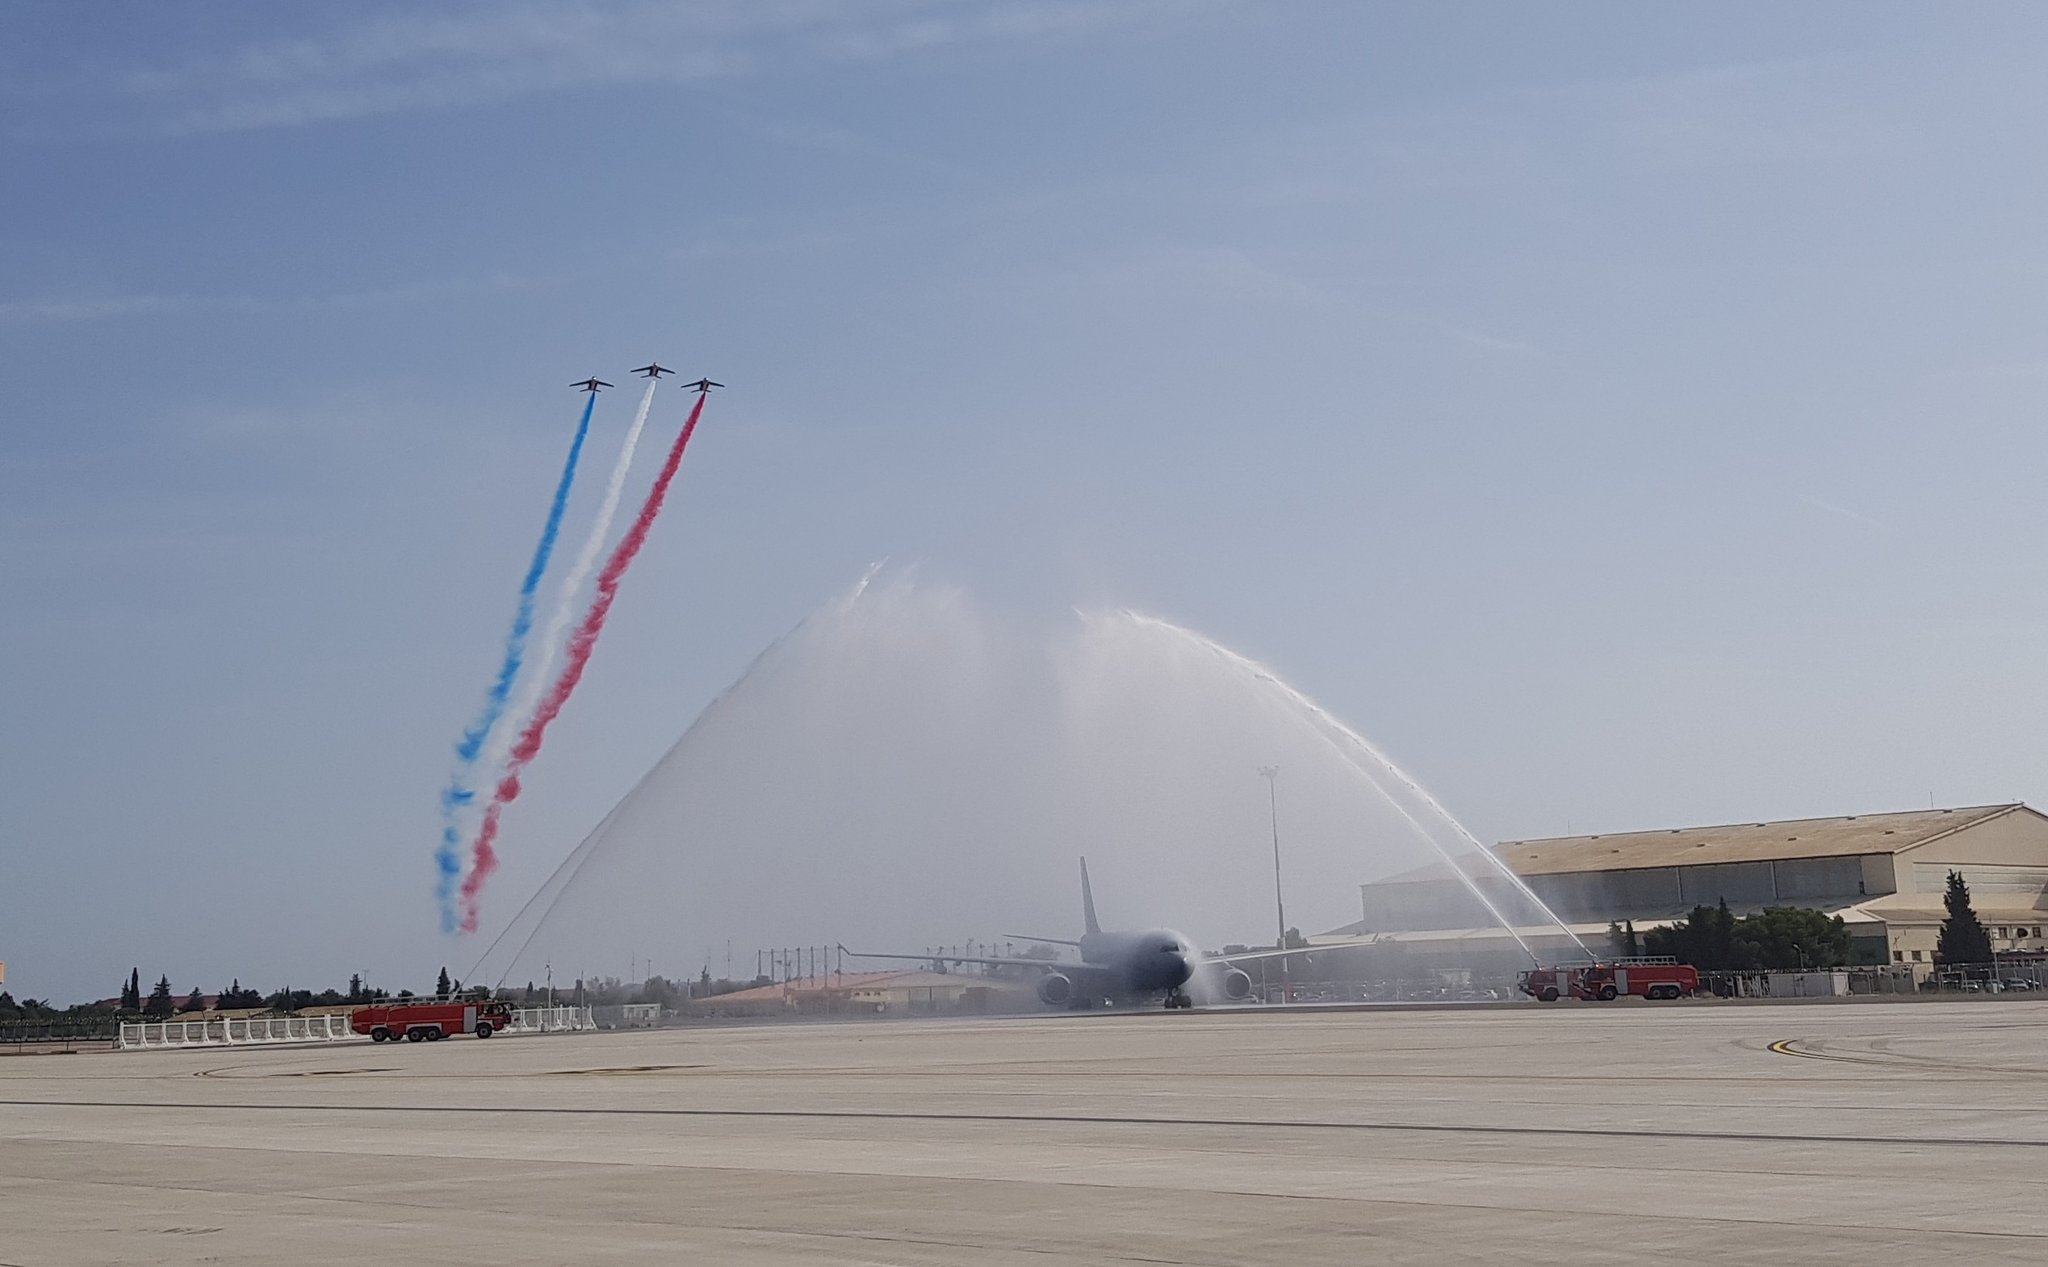 French Air Force Celebrates Arrival of Airbus A330 MRTT